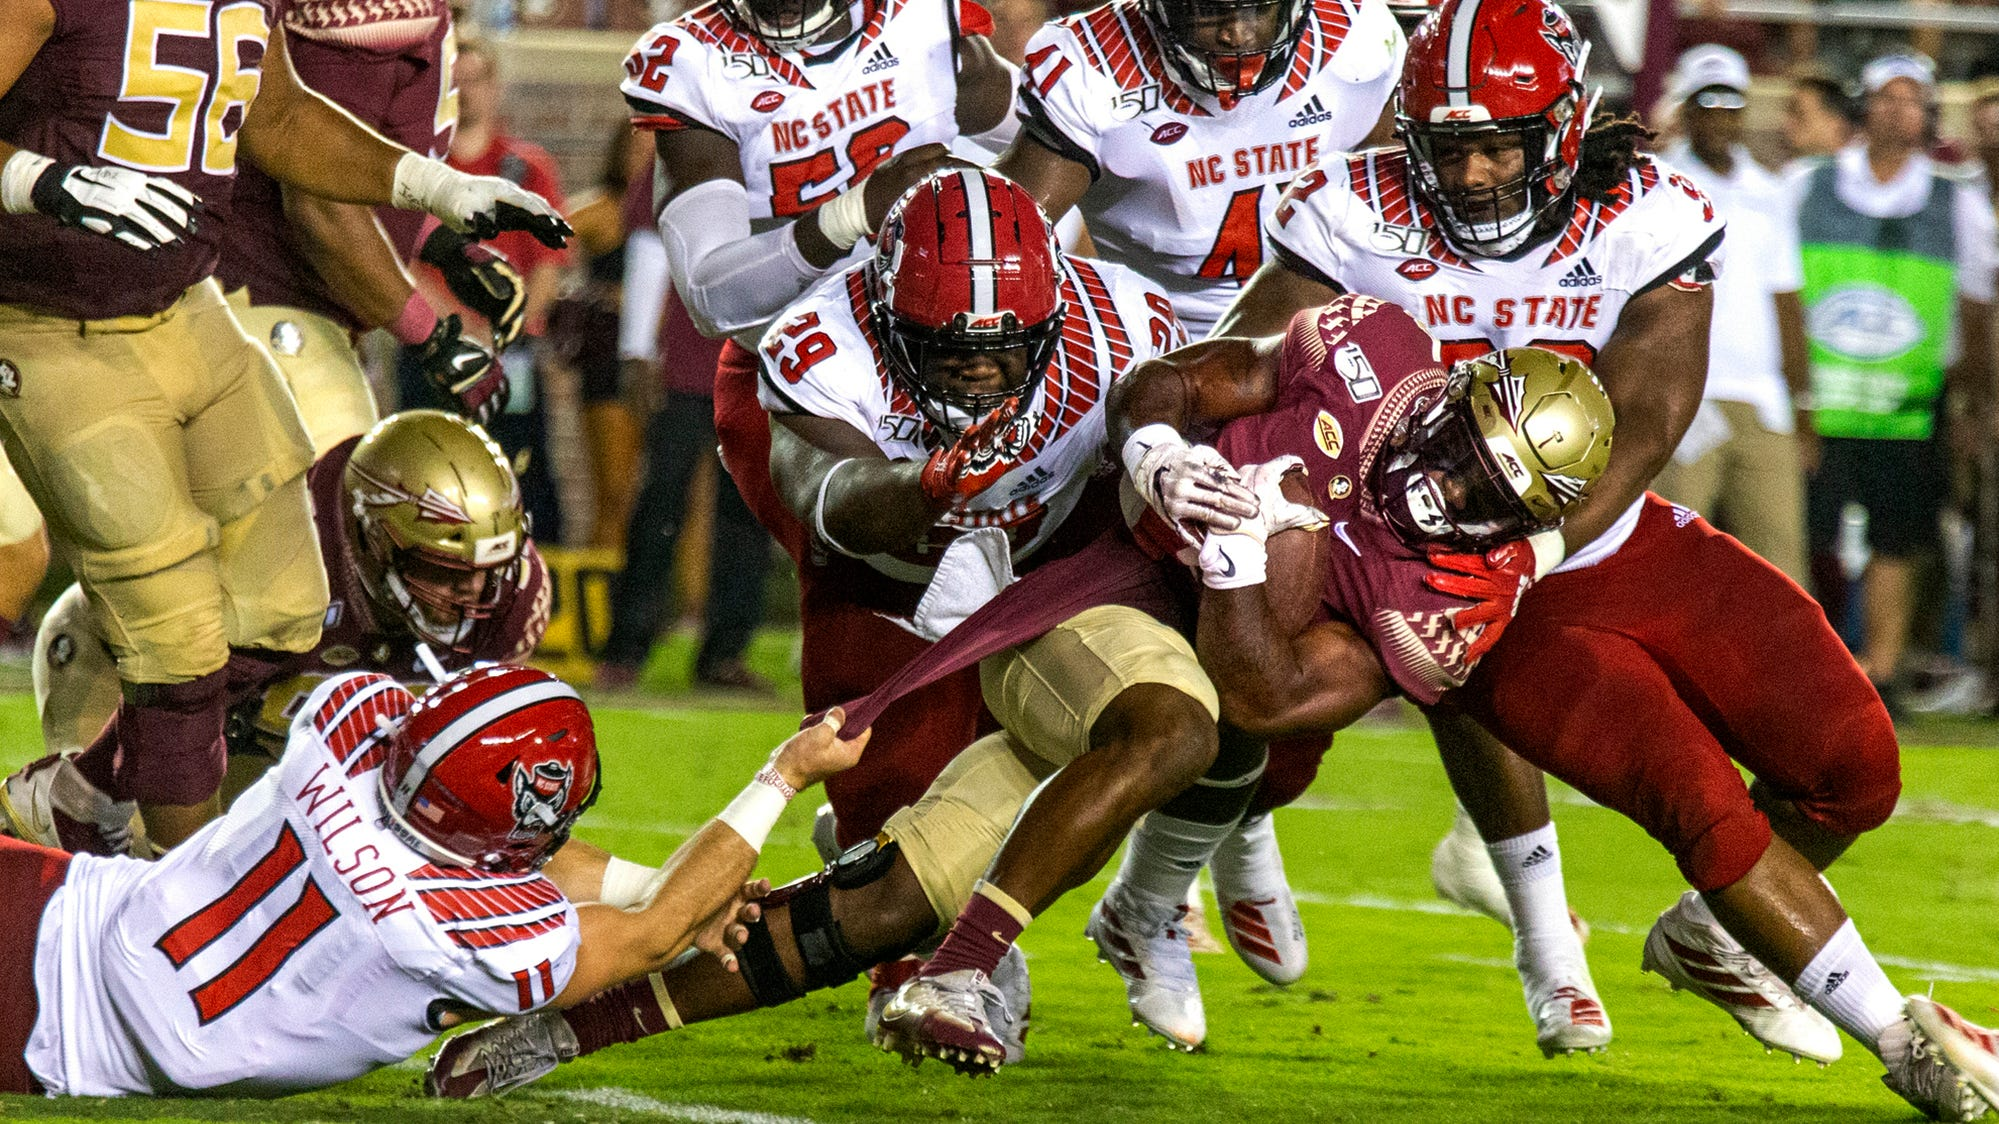 Florida State football vs. NC State video highlights, score